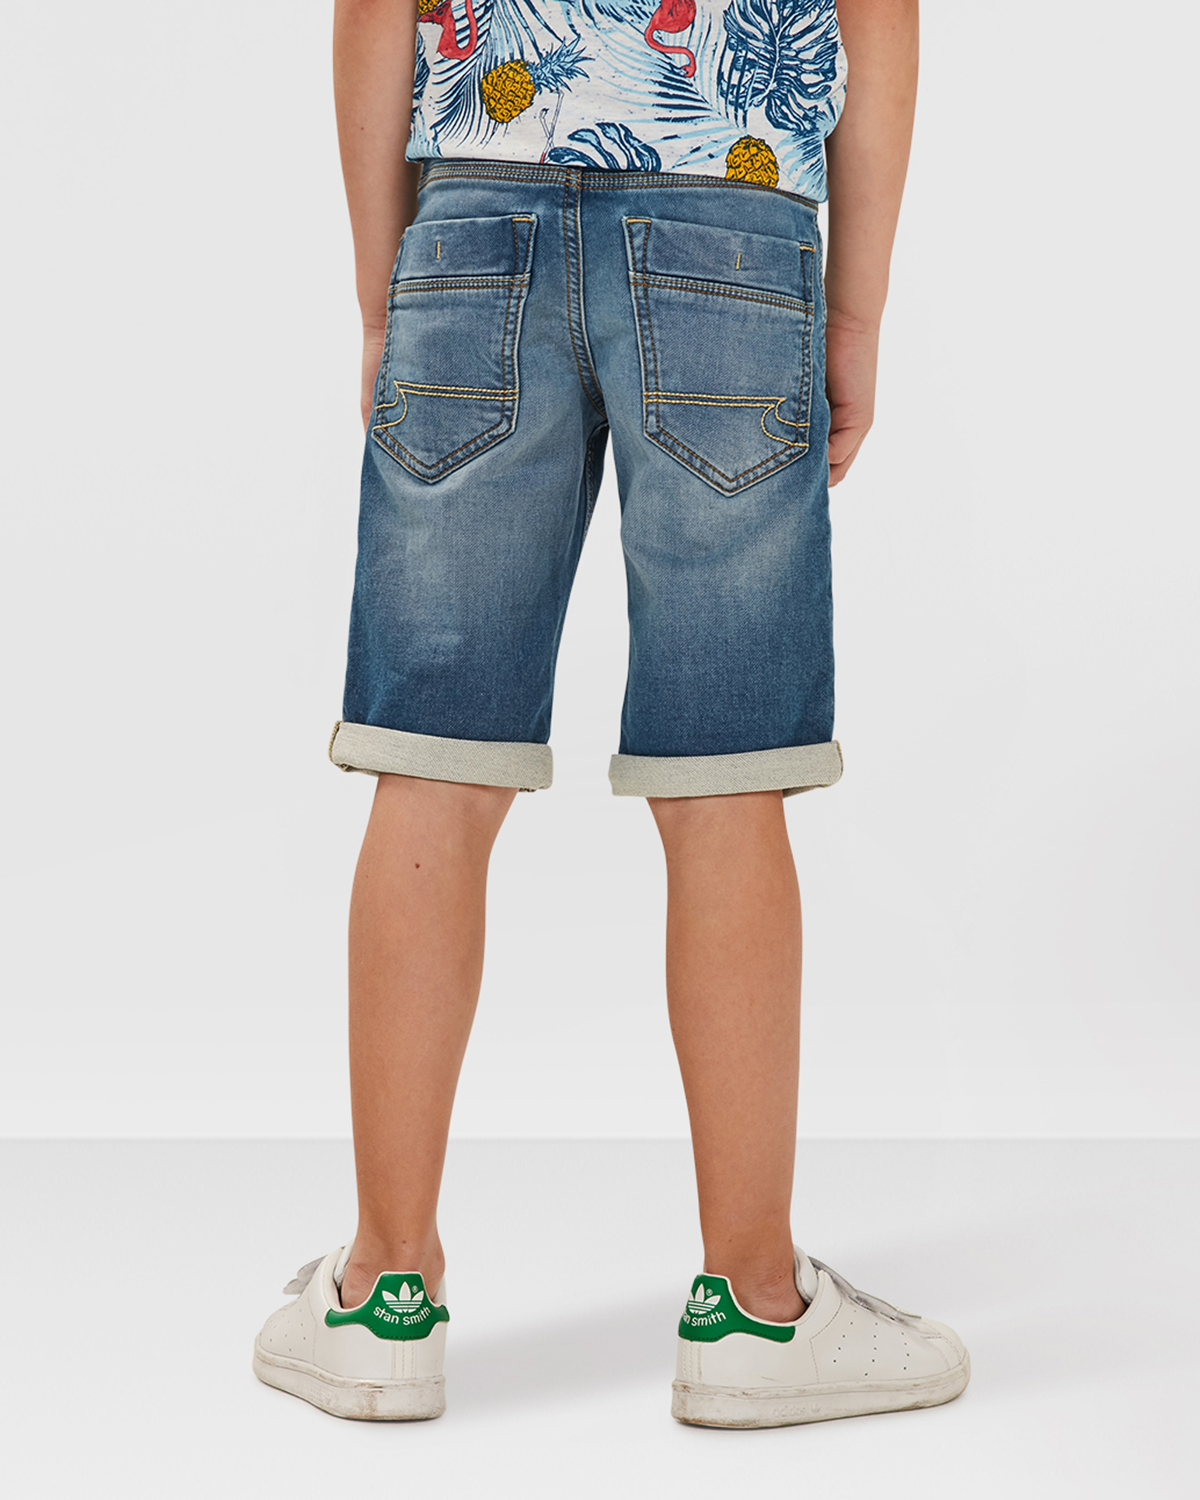 jungen jog denim shorts 79585217 we fashion. Black Bedroom Furniture Sets. Home Design Ideas